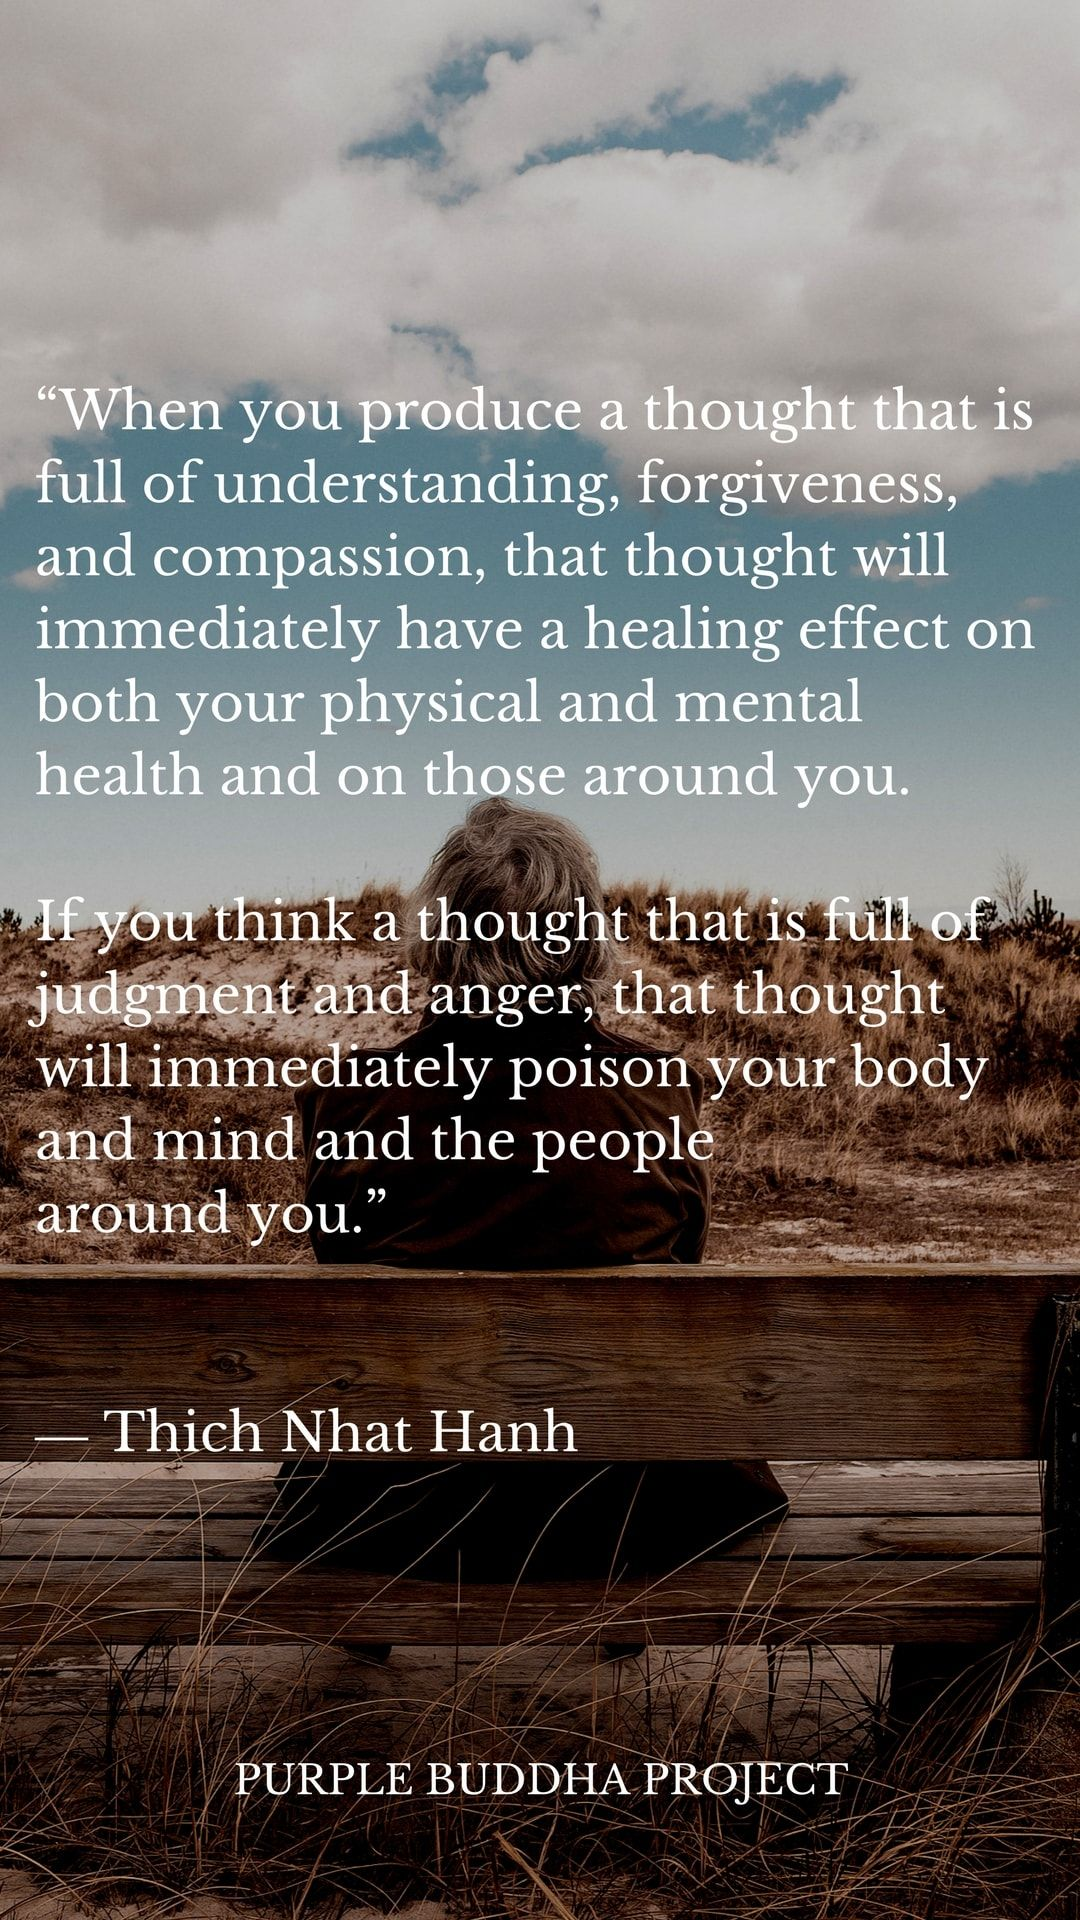 Thich Nhat Hanh Quotes 18 Quotes On Buddhism From Thich Nhat Hanh Of The Week  Purple